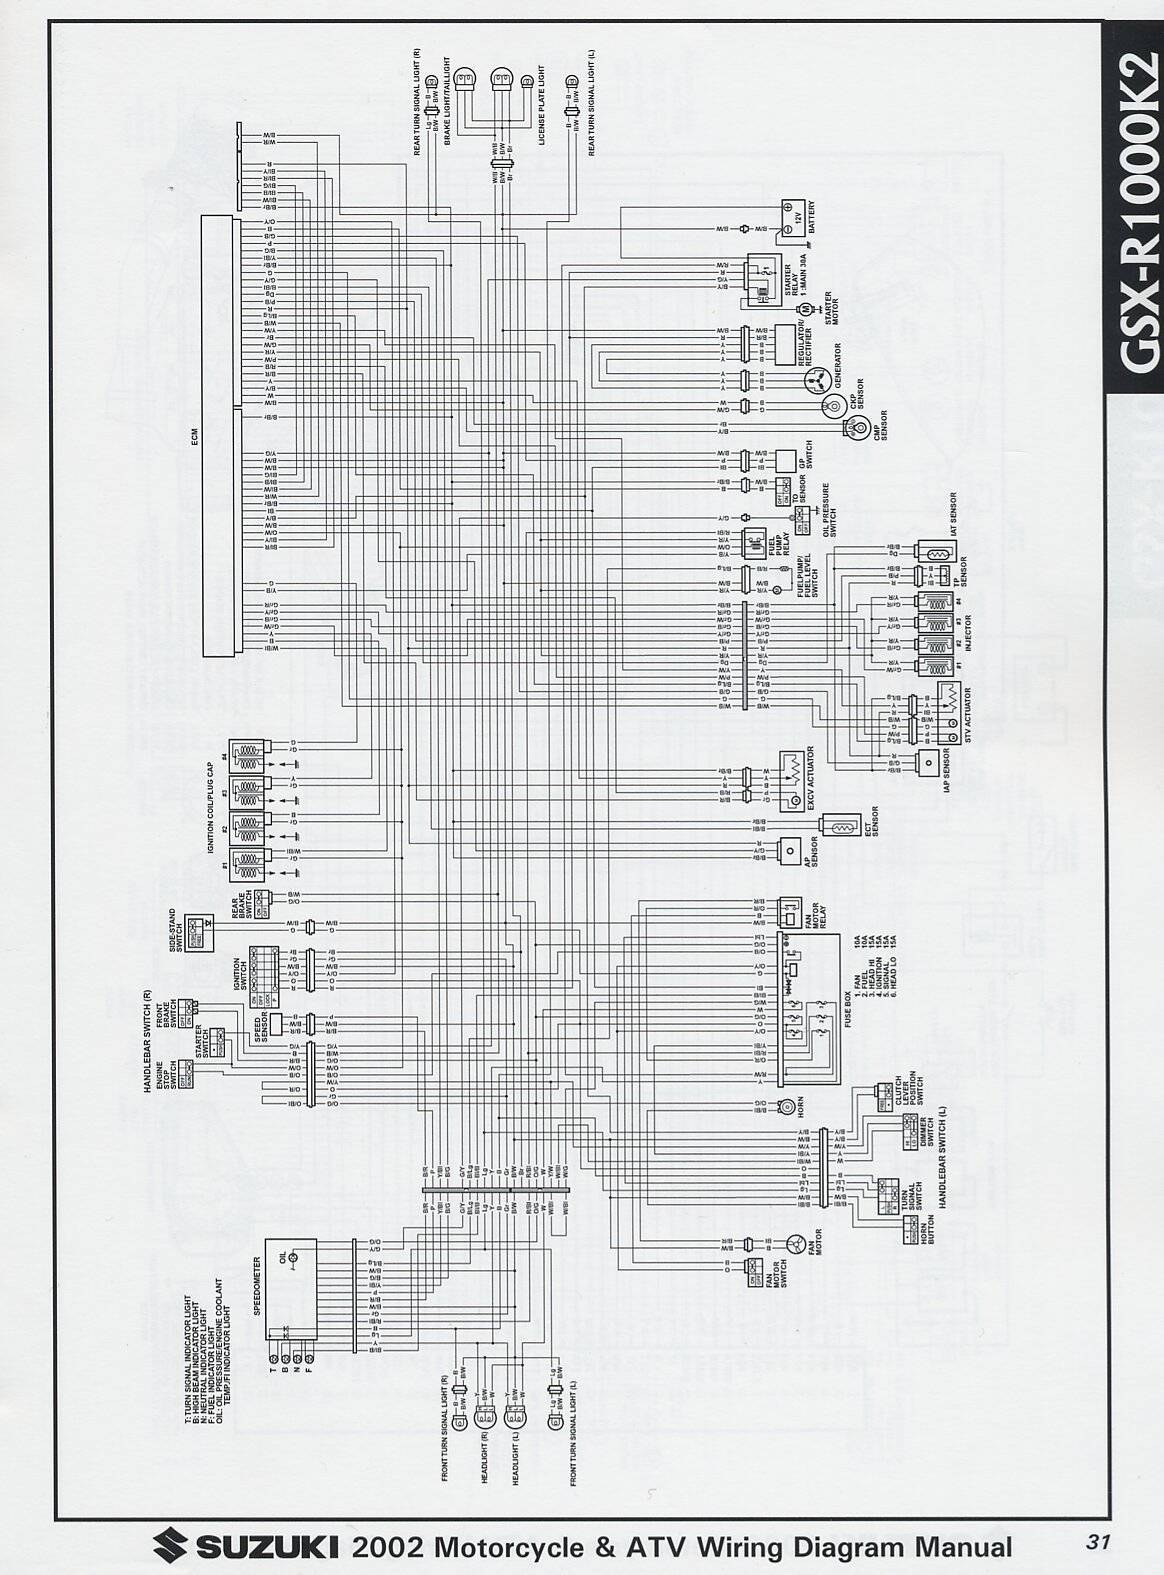 SR_8805] 1997 Gsxr Wiring Diagram Schematic WiringHapolo Exmet Awni Eopsy Peted Oidei Vira Mohammedshrine Librar Wiring 101